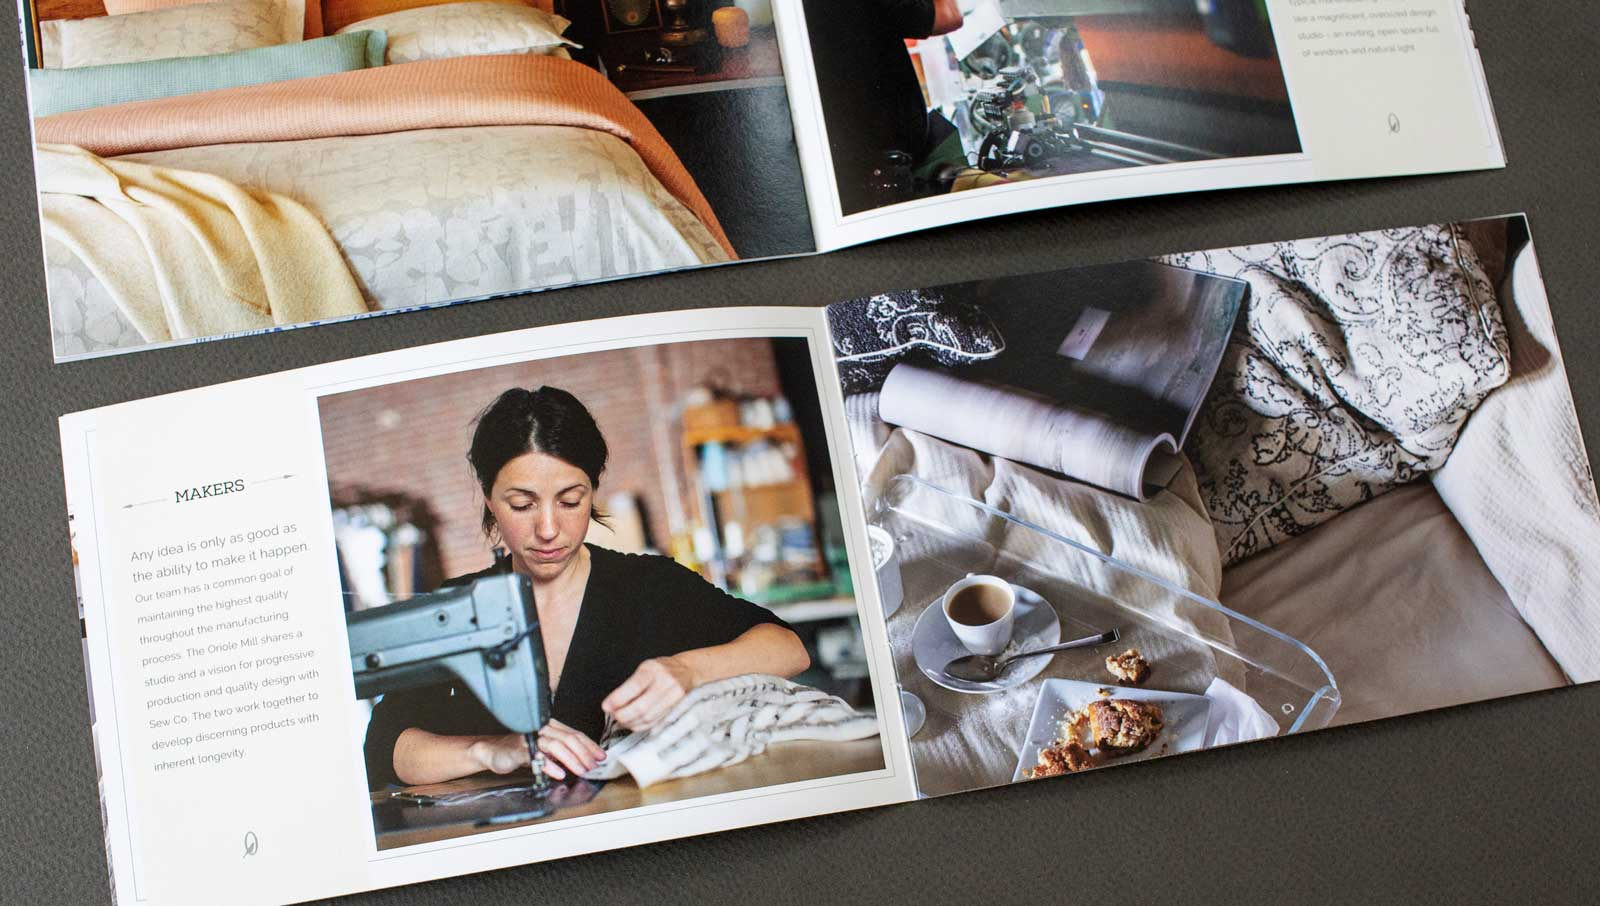 Catalog spreads for The Oriole Mill, showing a bed with woven pastel-colored comforter and pillows. Image showing factory worker sewing.